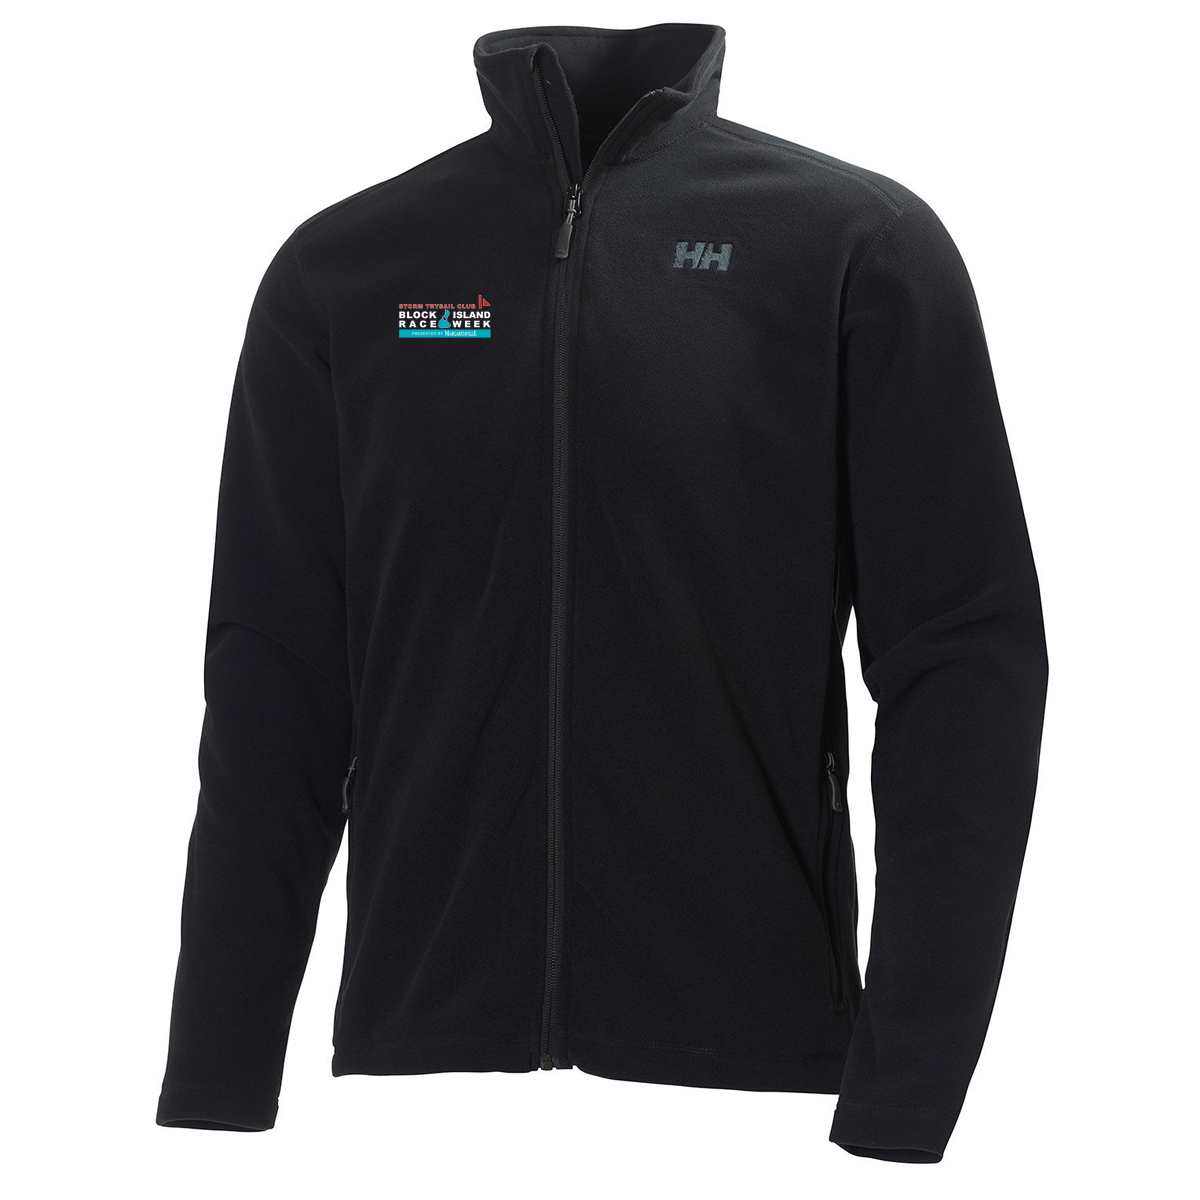 Block Island Race Week 21 - Women's Helly Hansen Daybreaker Full Zip Jacket